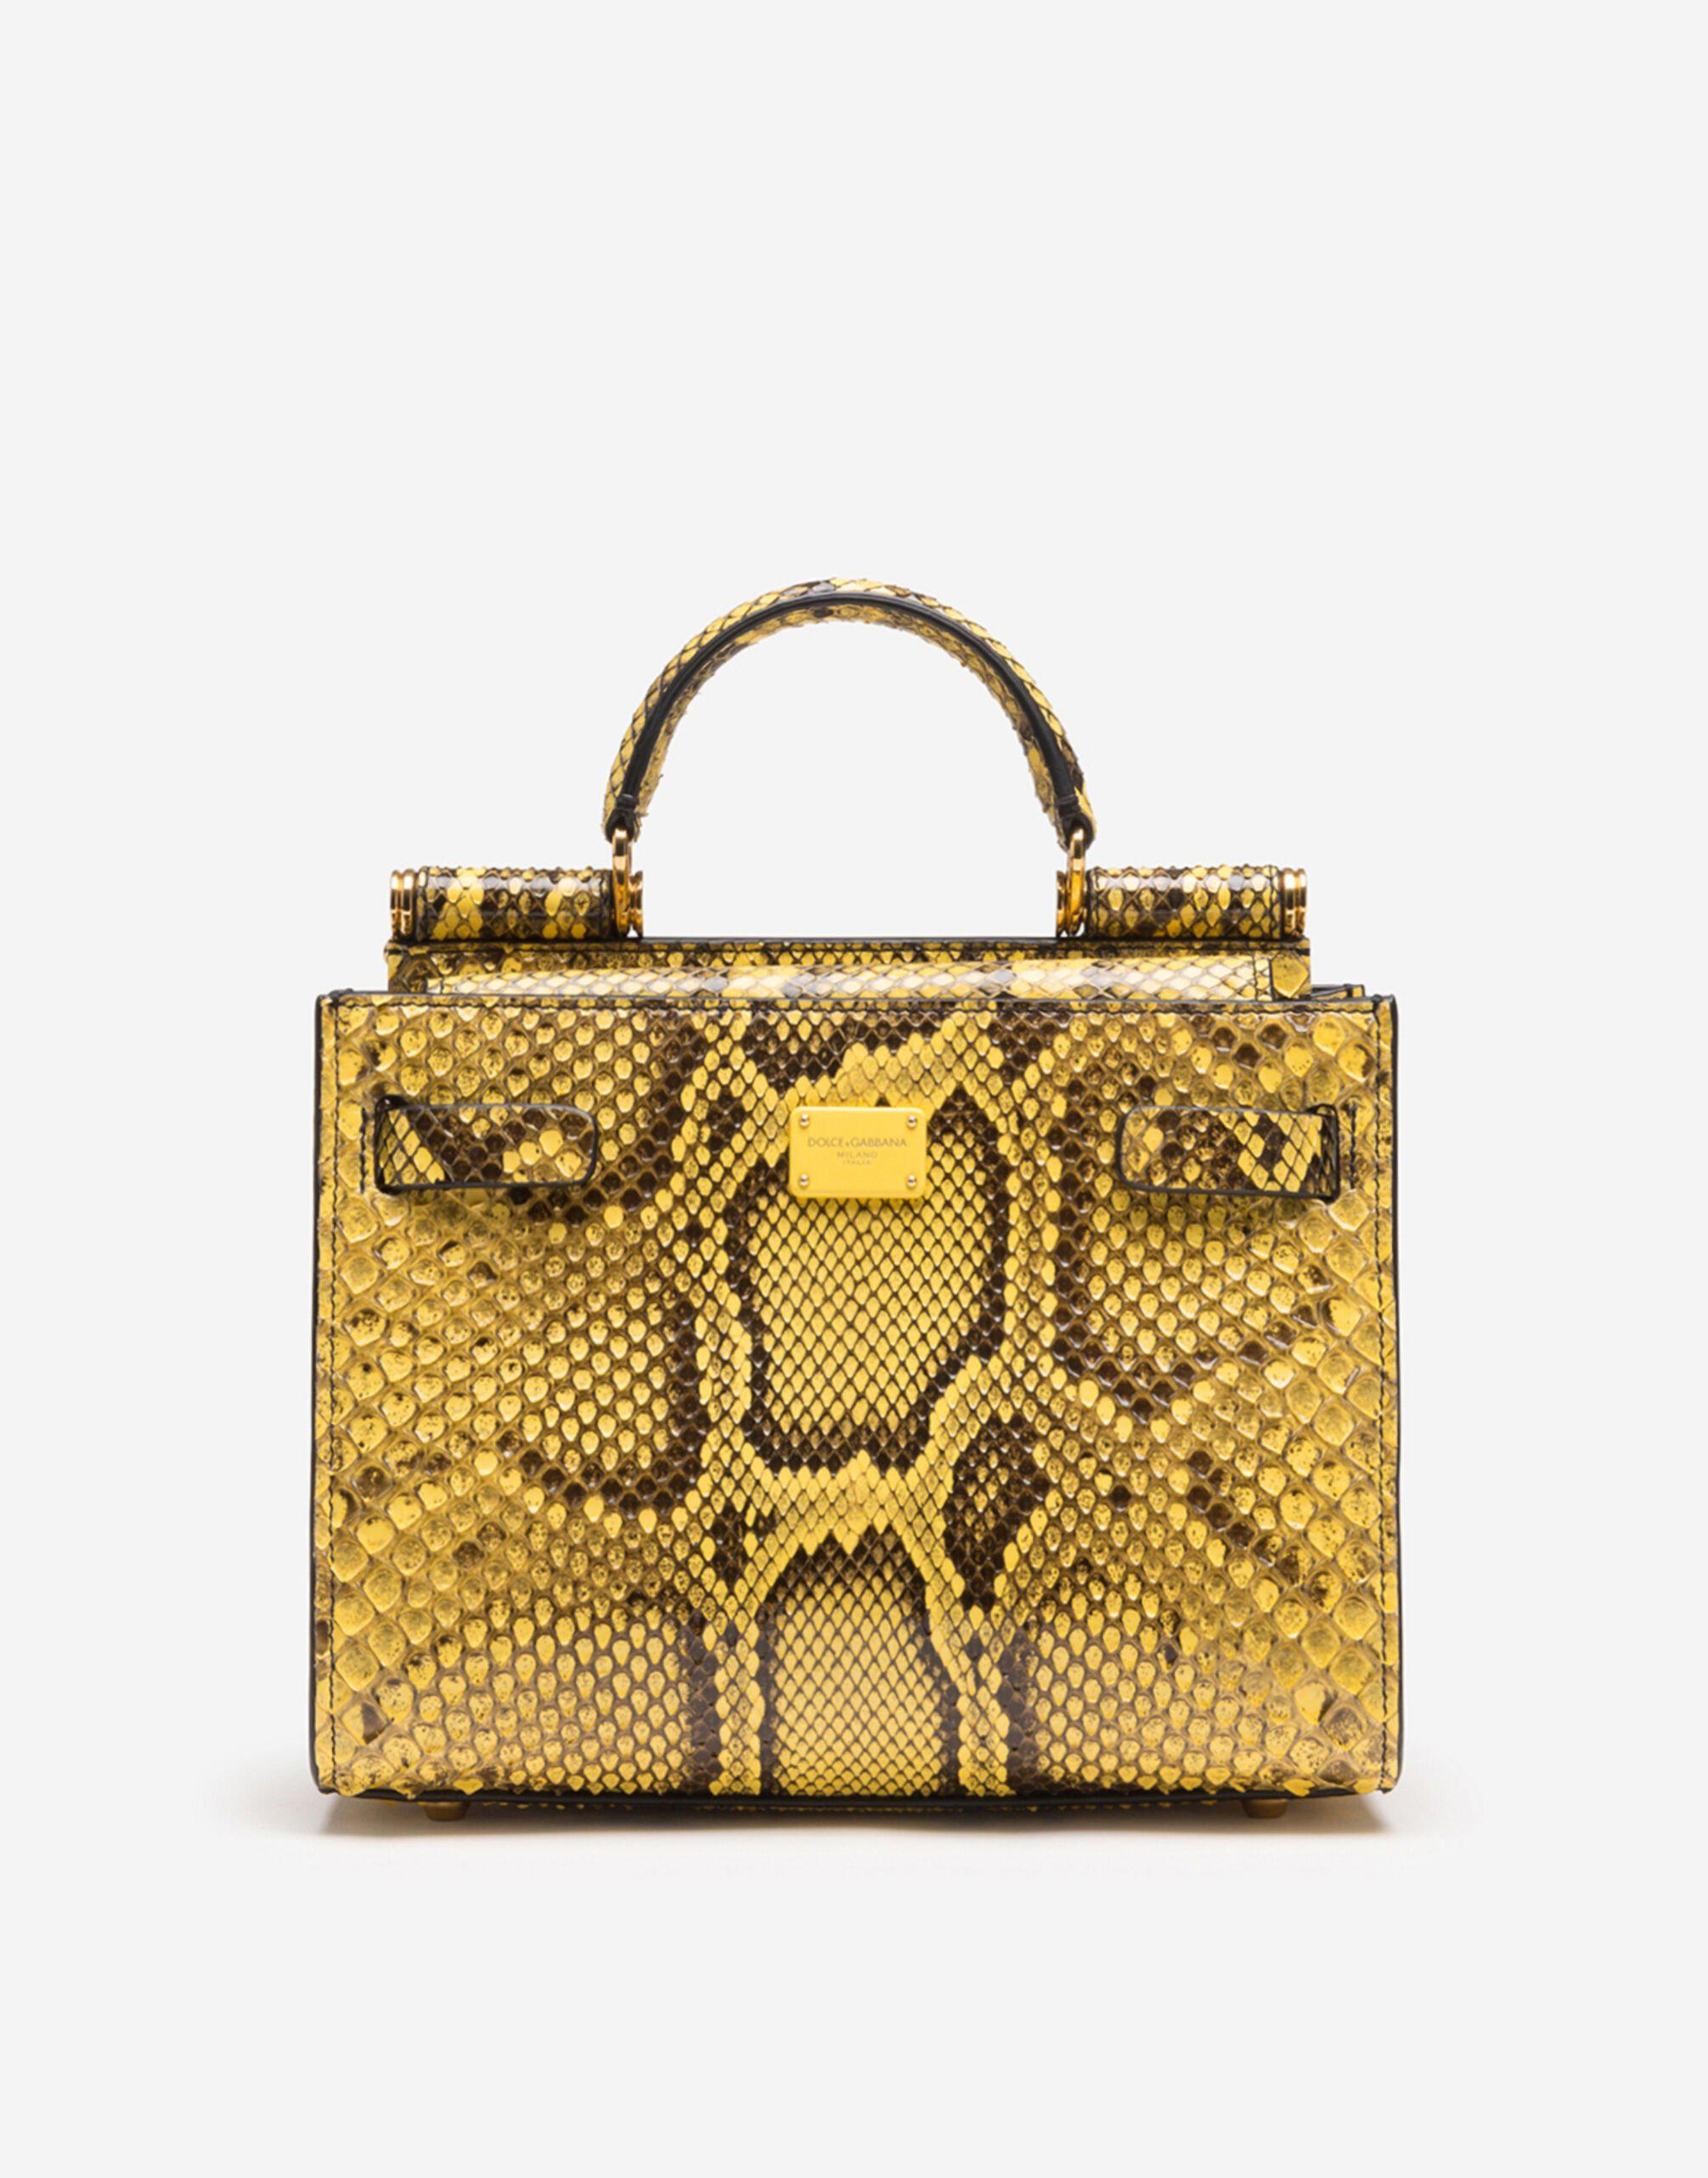 Sicily 62 small bag in python skin